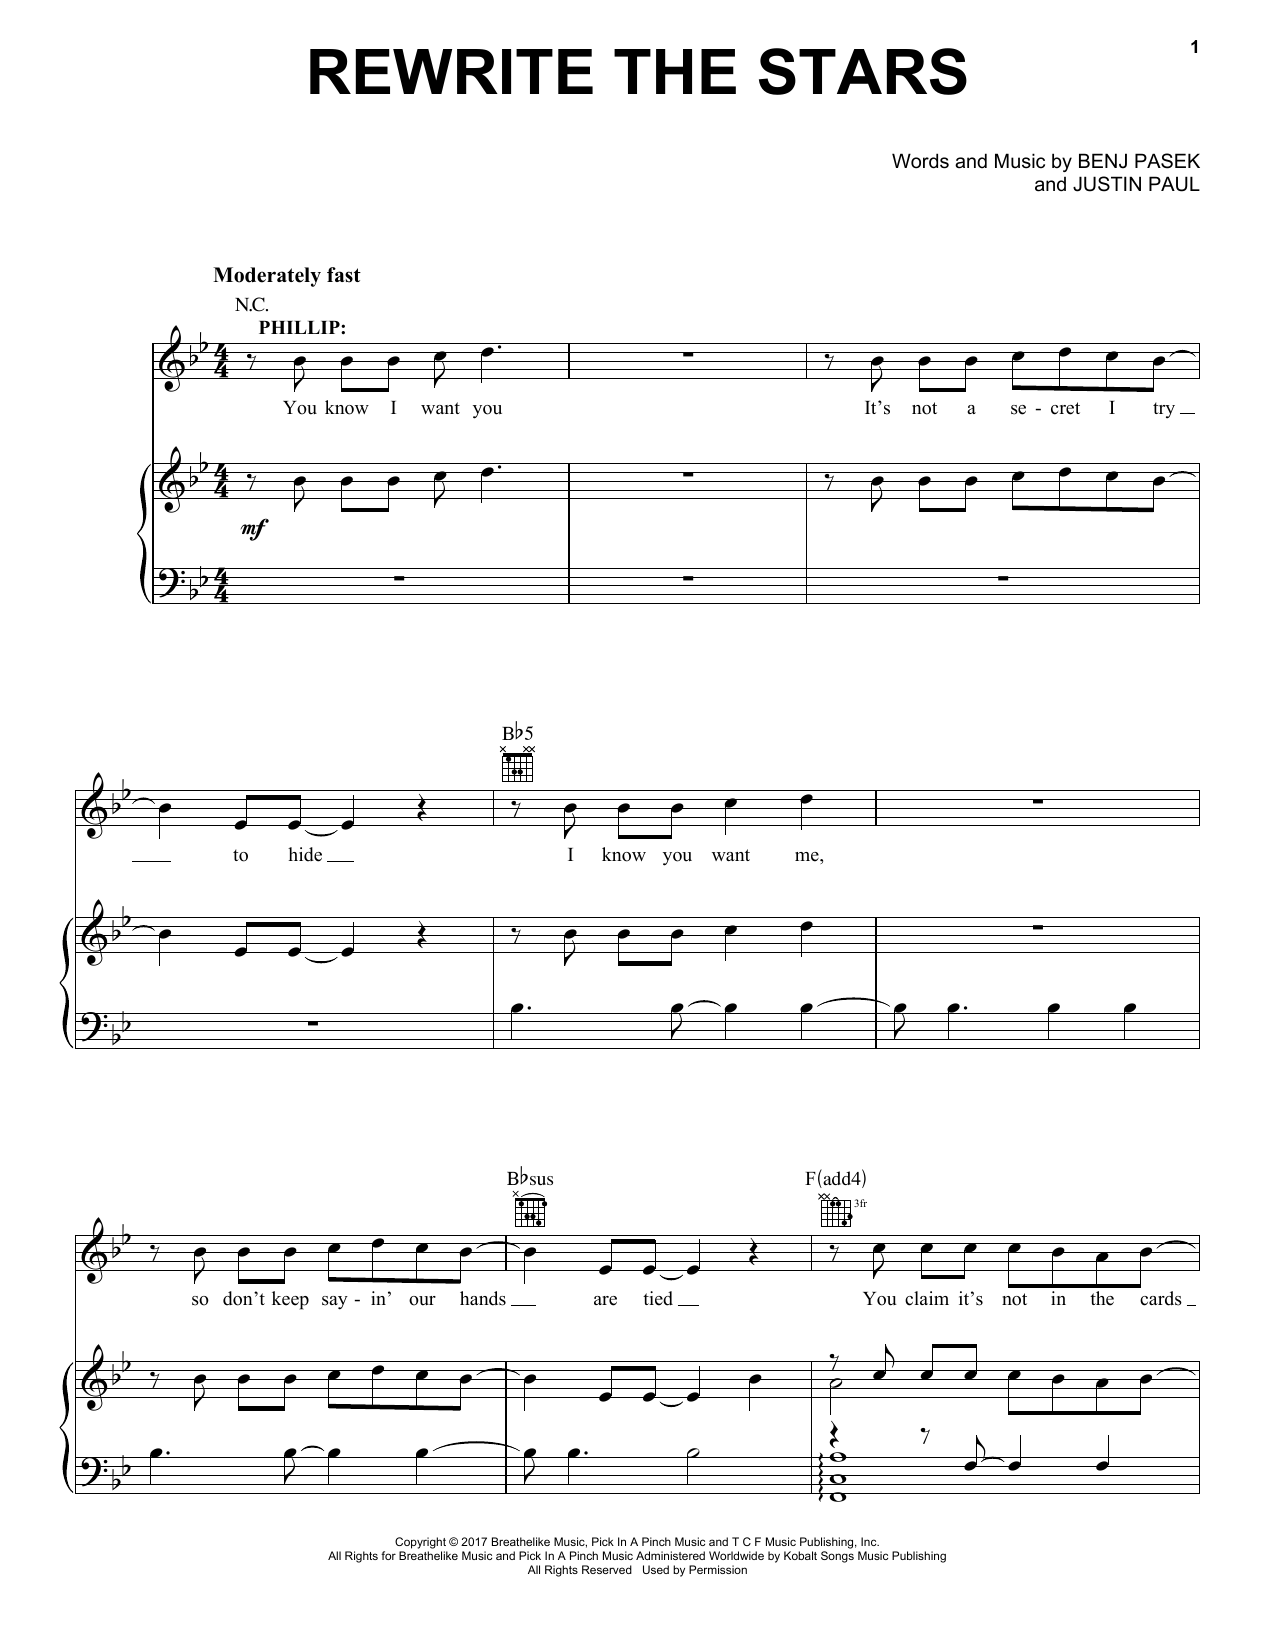 Pasek & Paul Rewrite The Stars (from The Greatest Showman) sheet music notes and chords. Download Printable PDF.